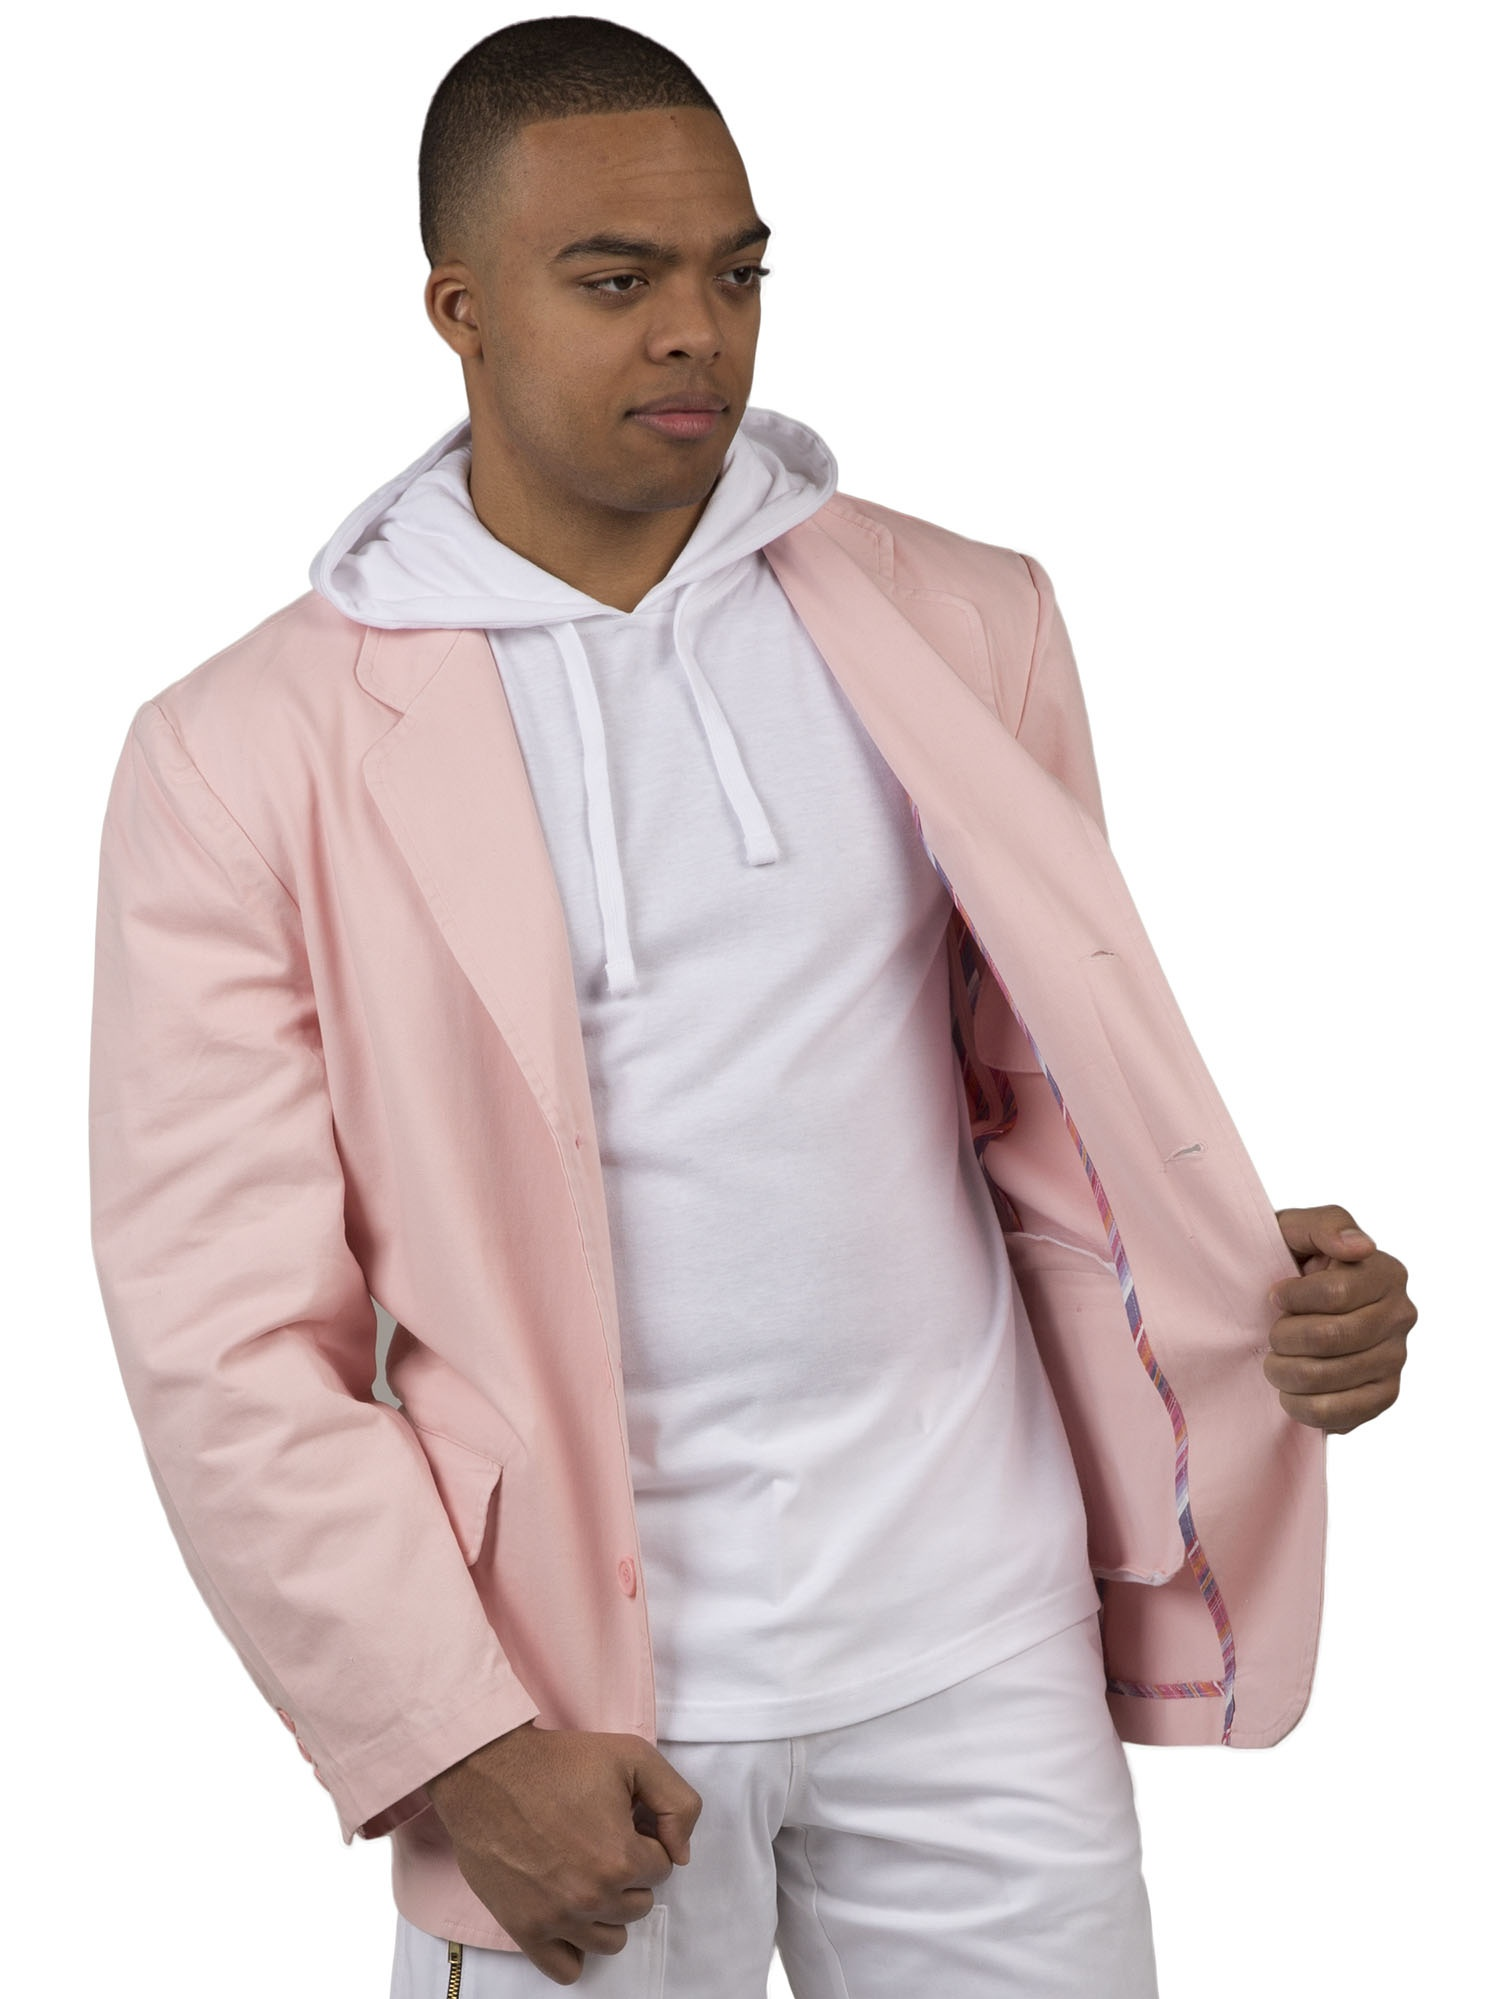 Vibes Gold Label Mens Pink Twill Casual Blazer Jacket 3 Button Front Enzyme Wash